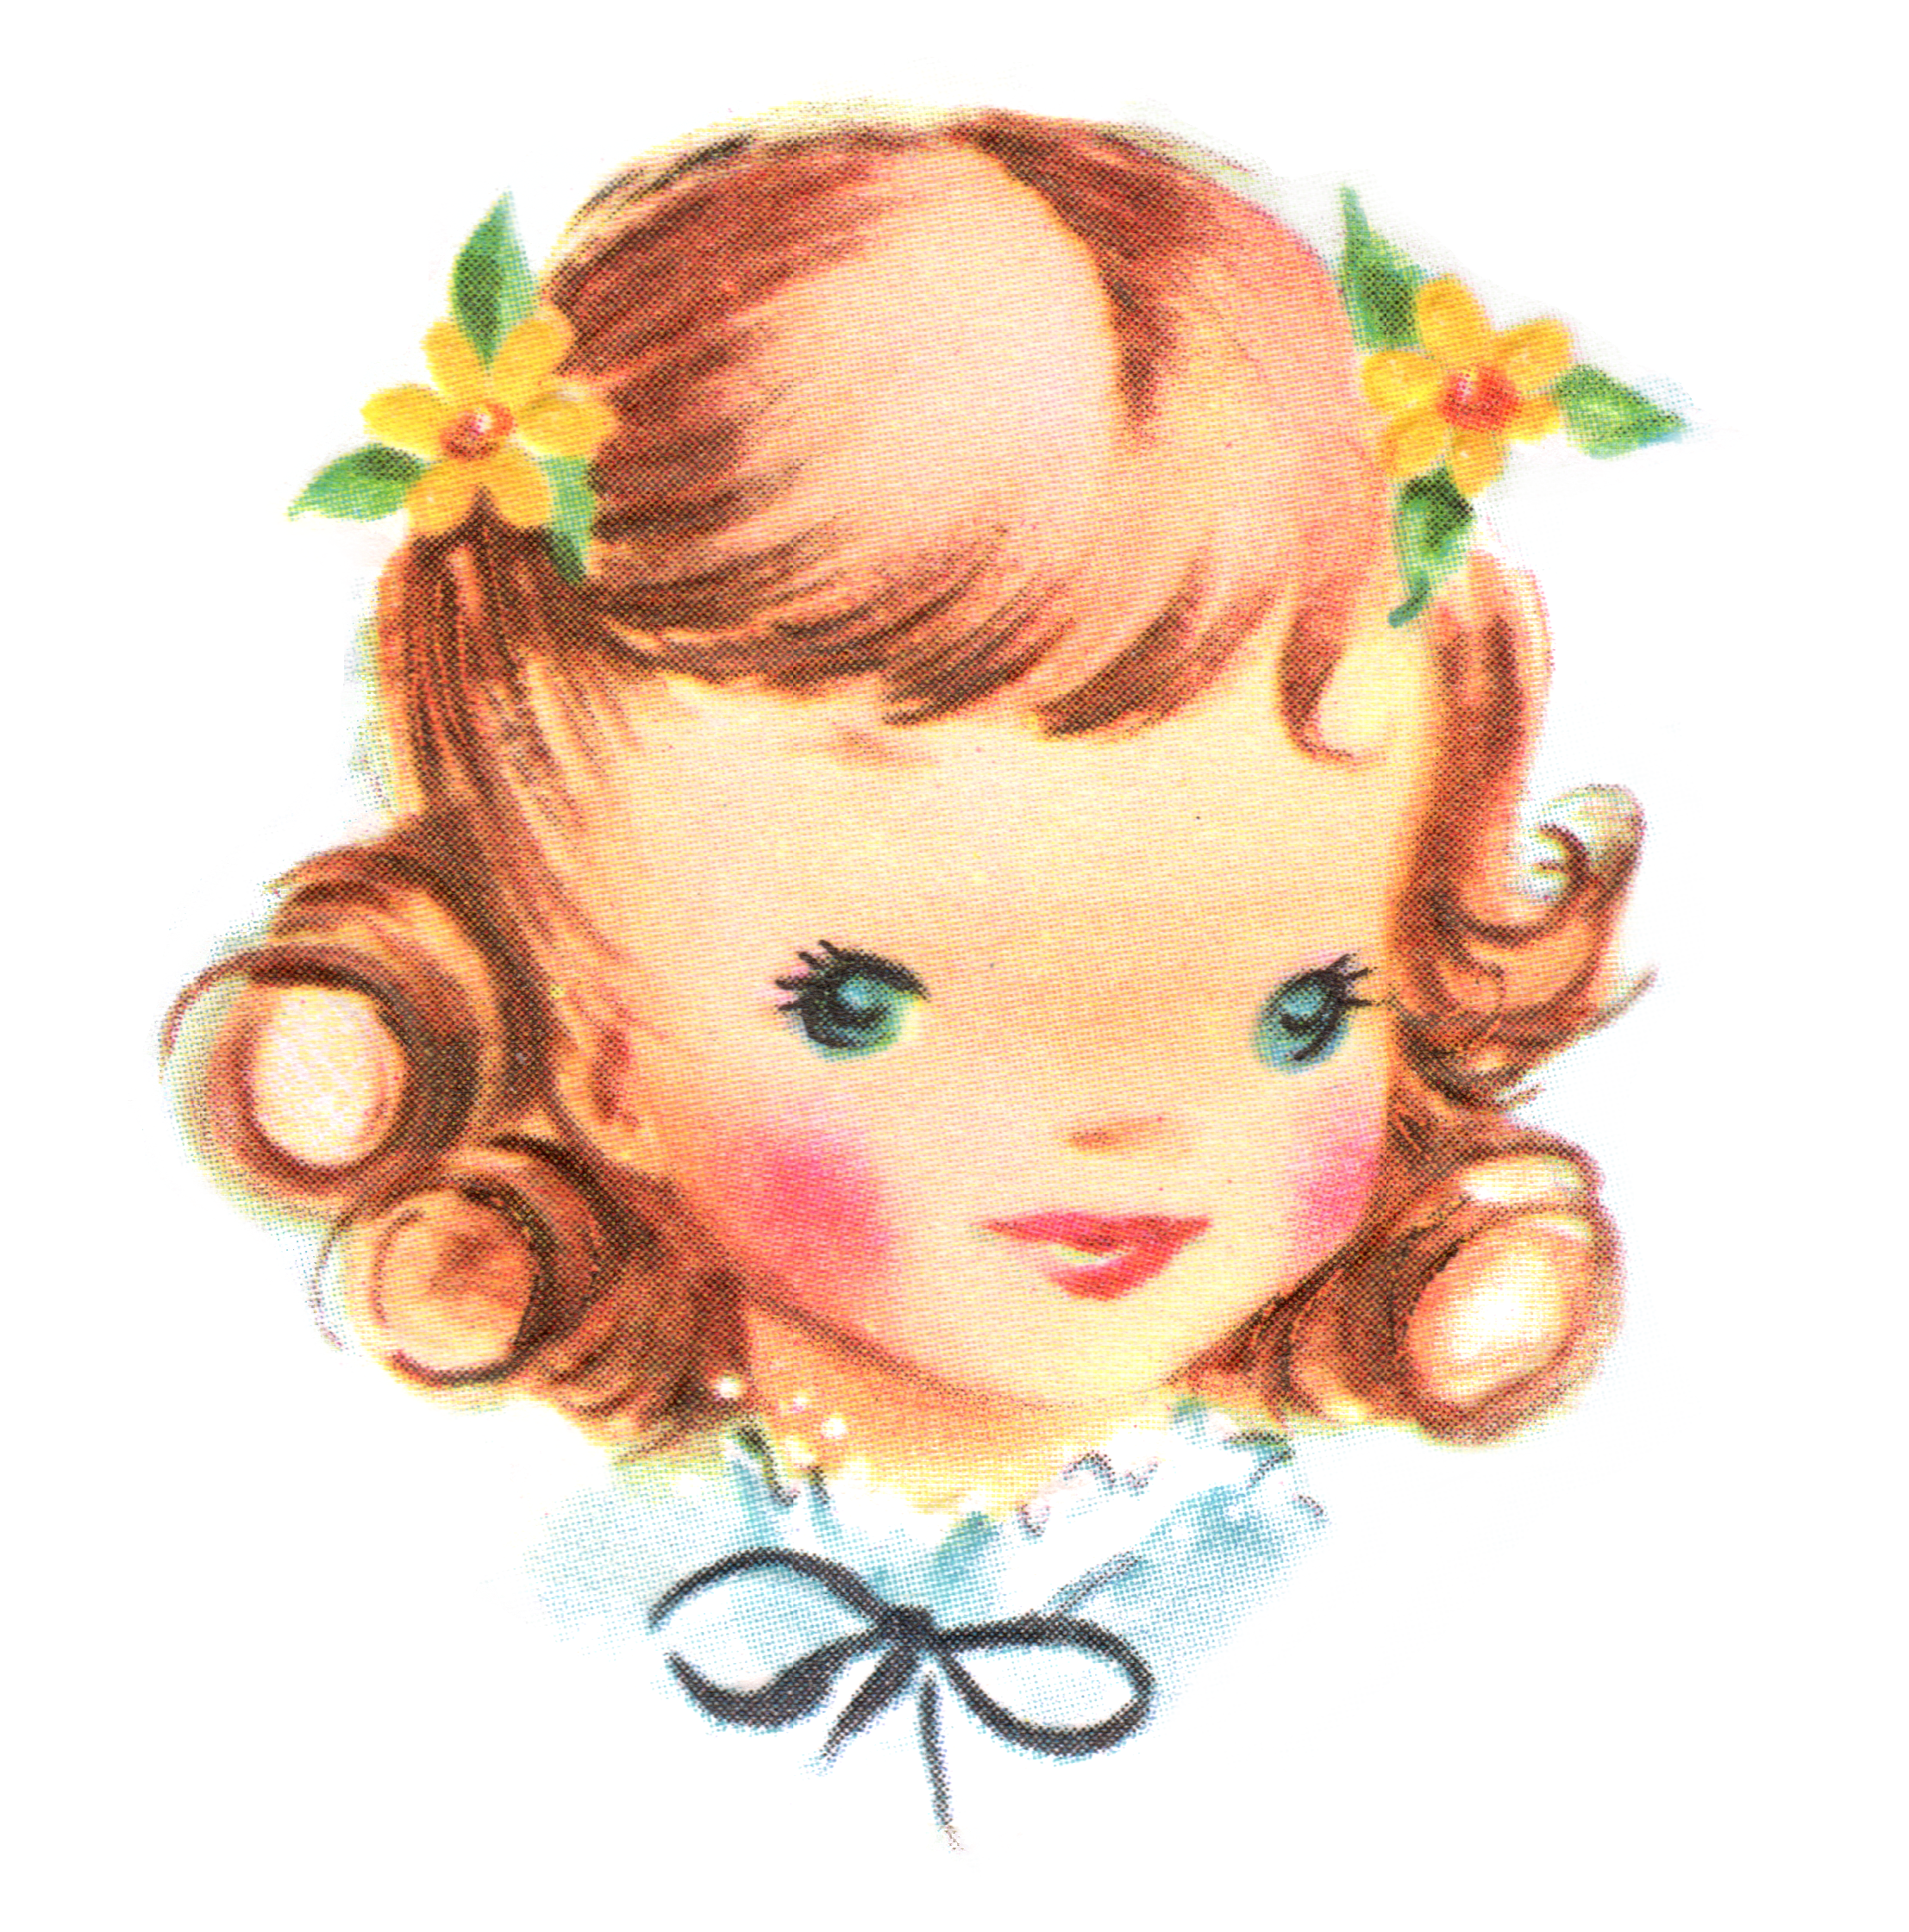 July clipart vintage. Images lovely girl face